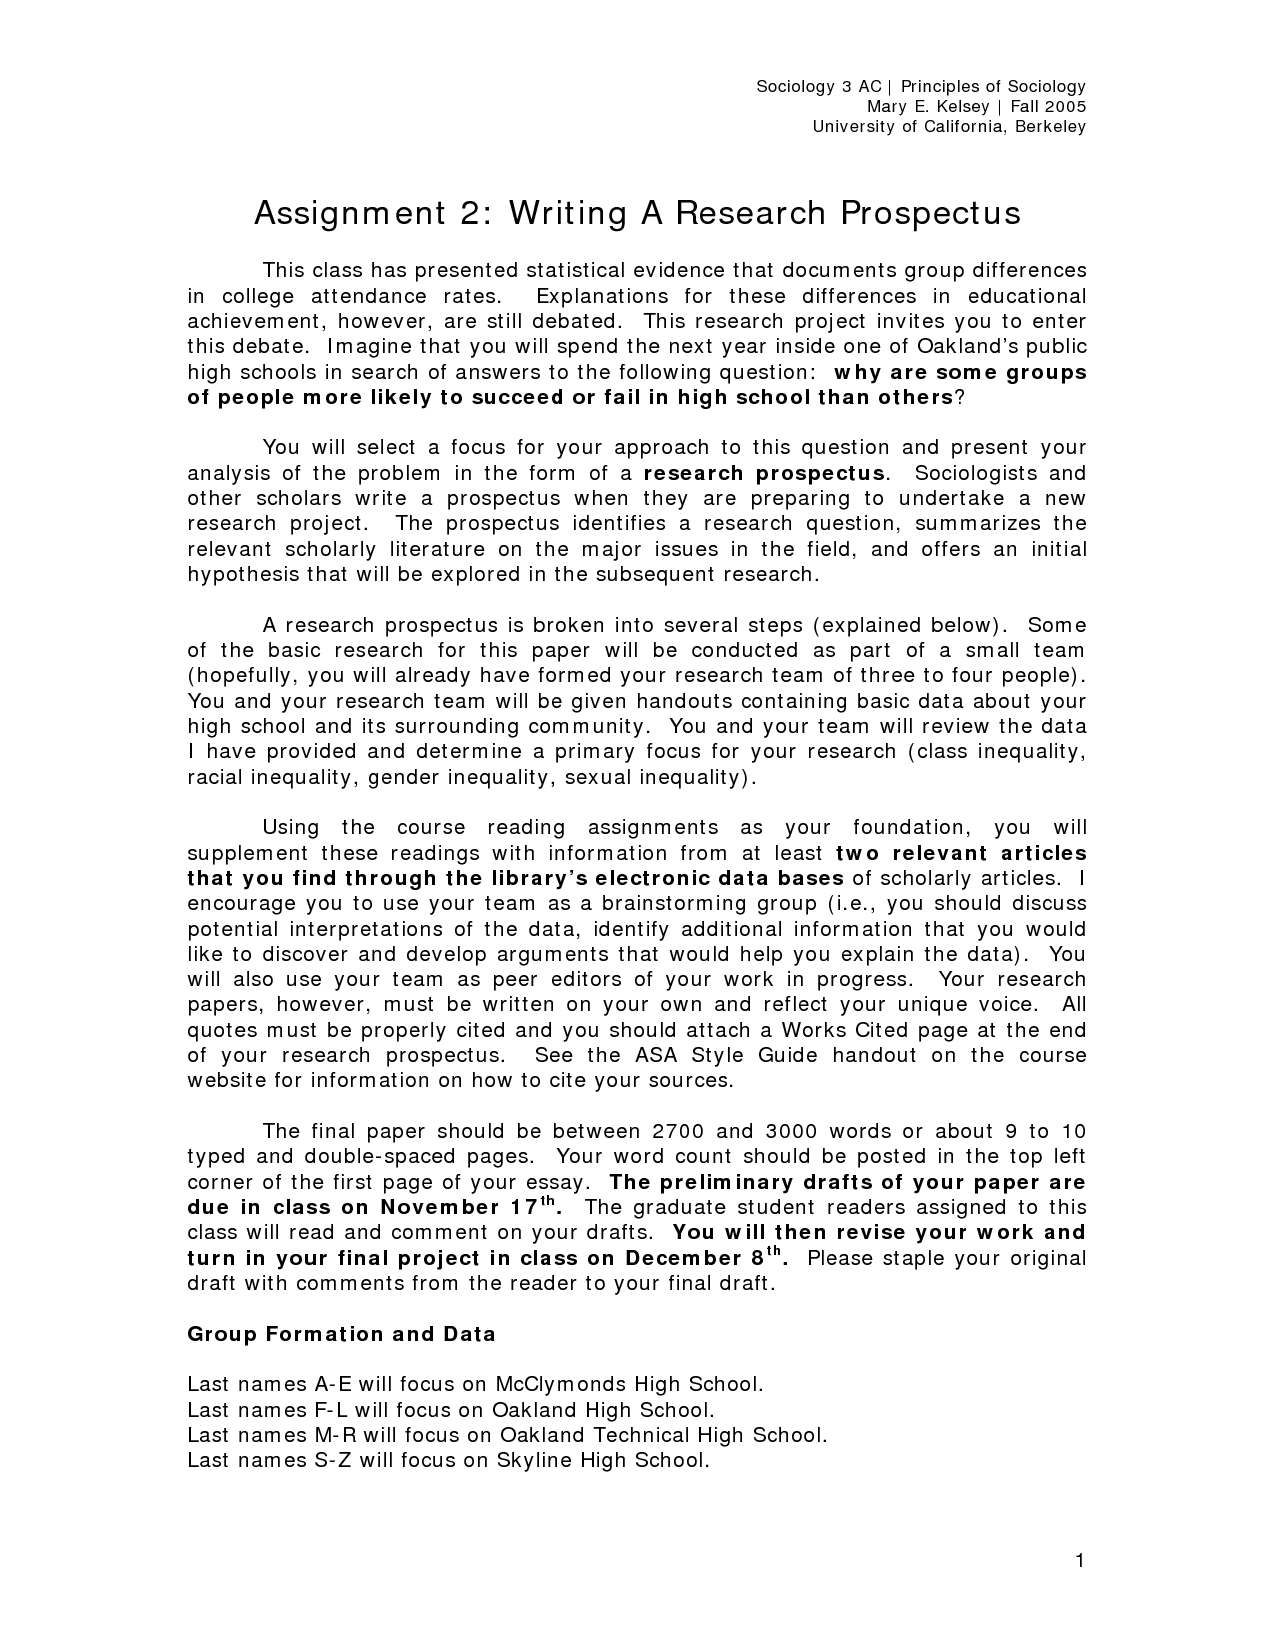 research prospectus paper Essay on why i want to go to college research prospectus top rated essay writing service buying a dissertation 3rd edition.